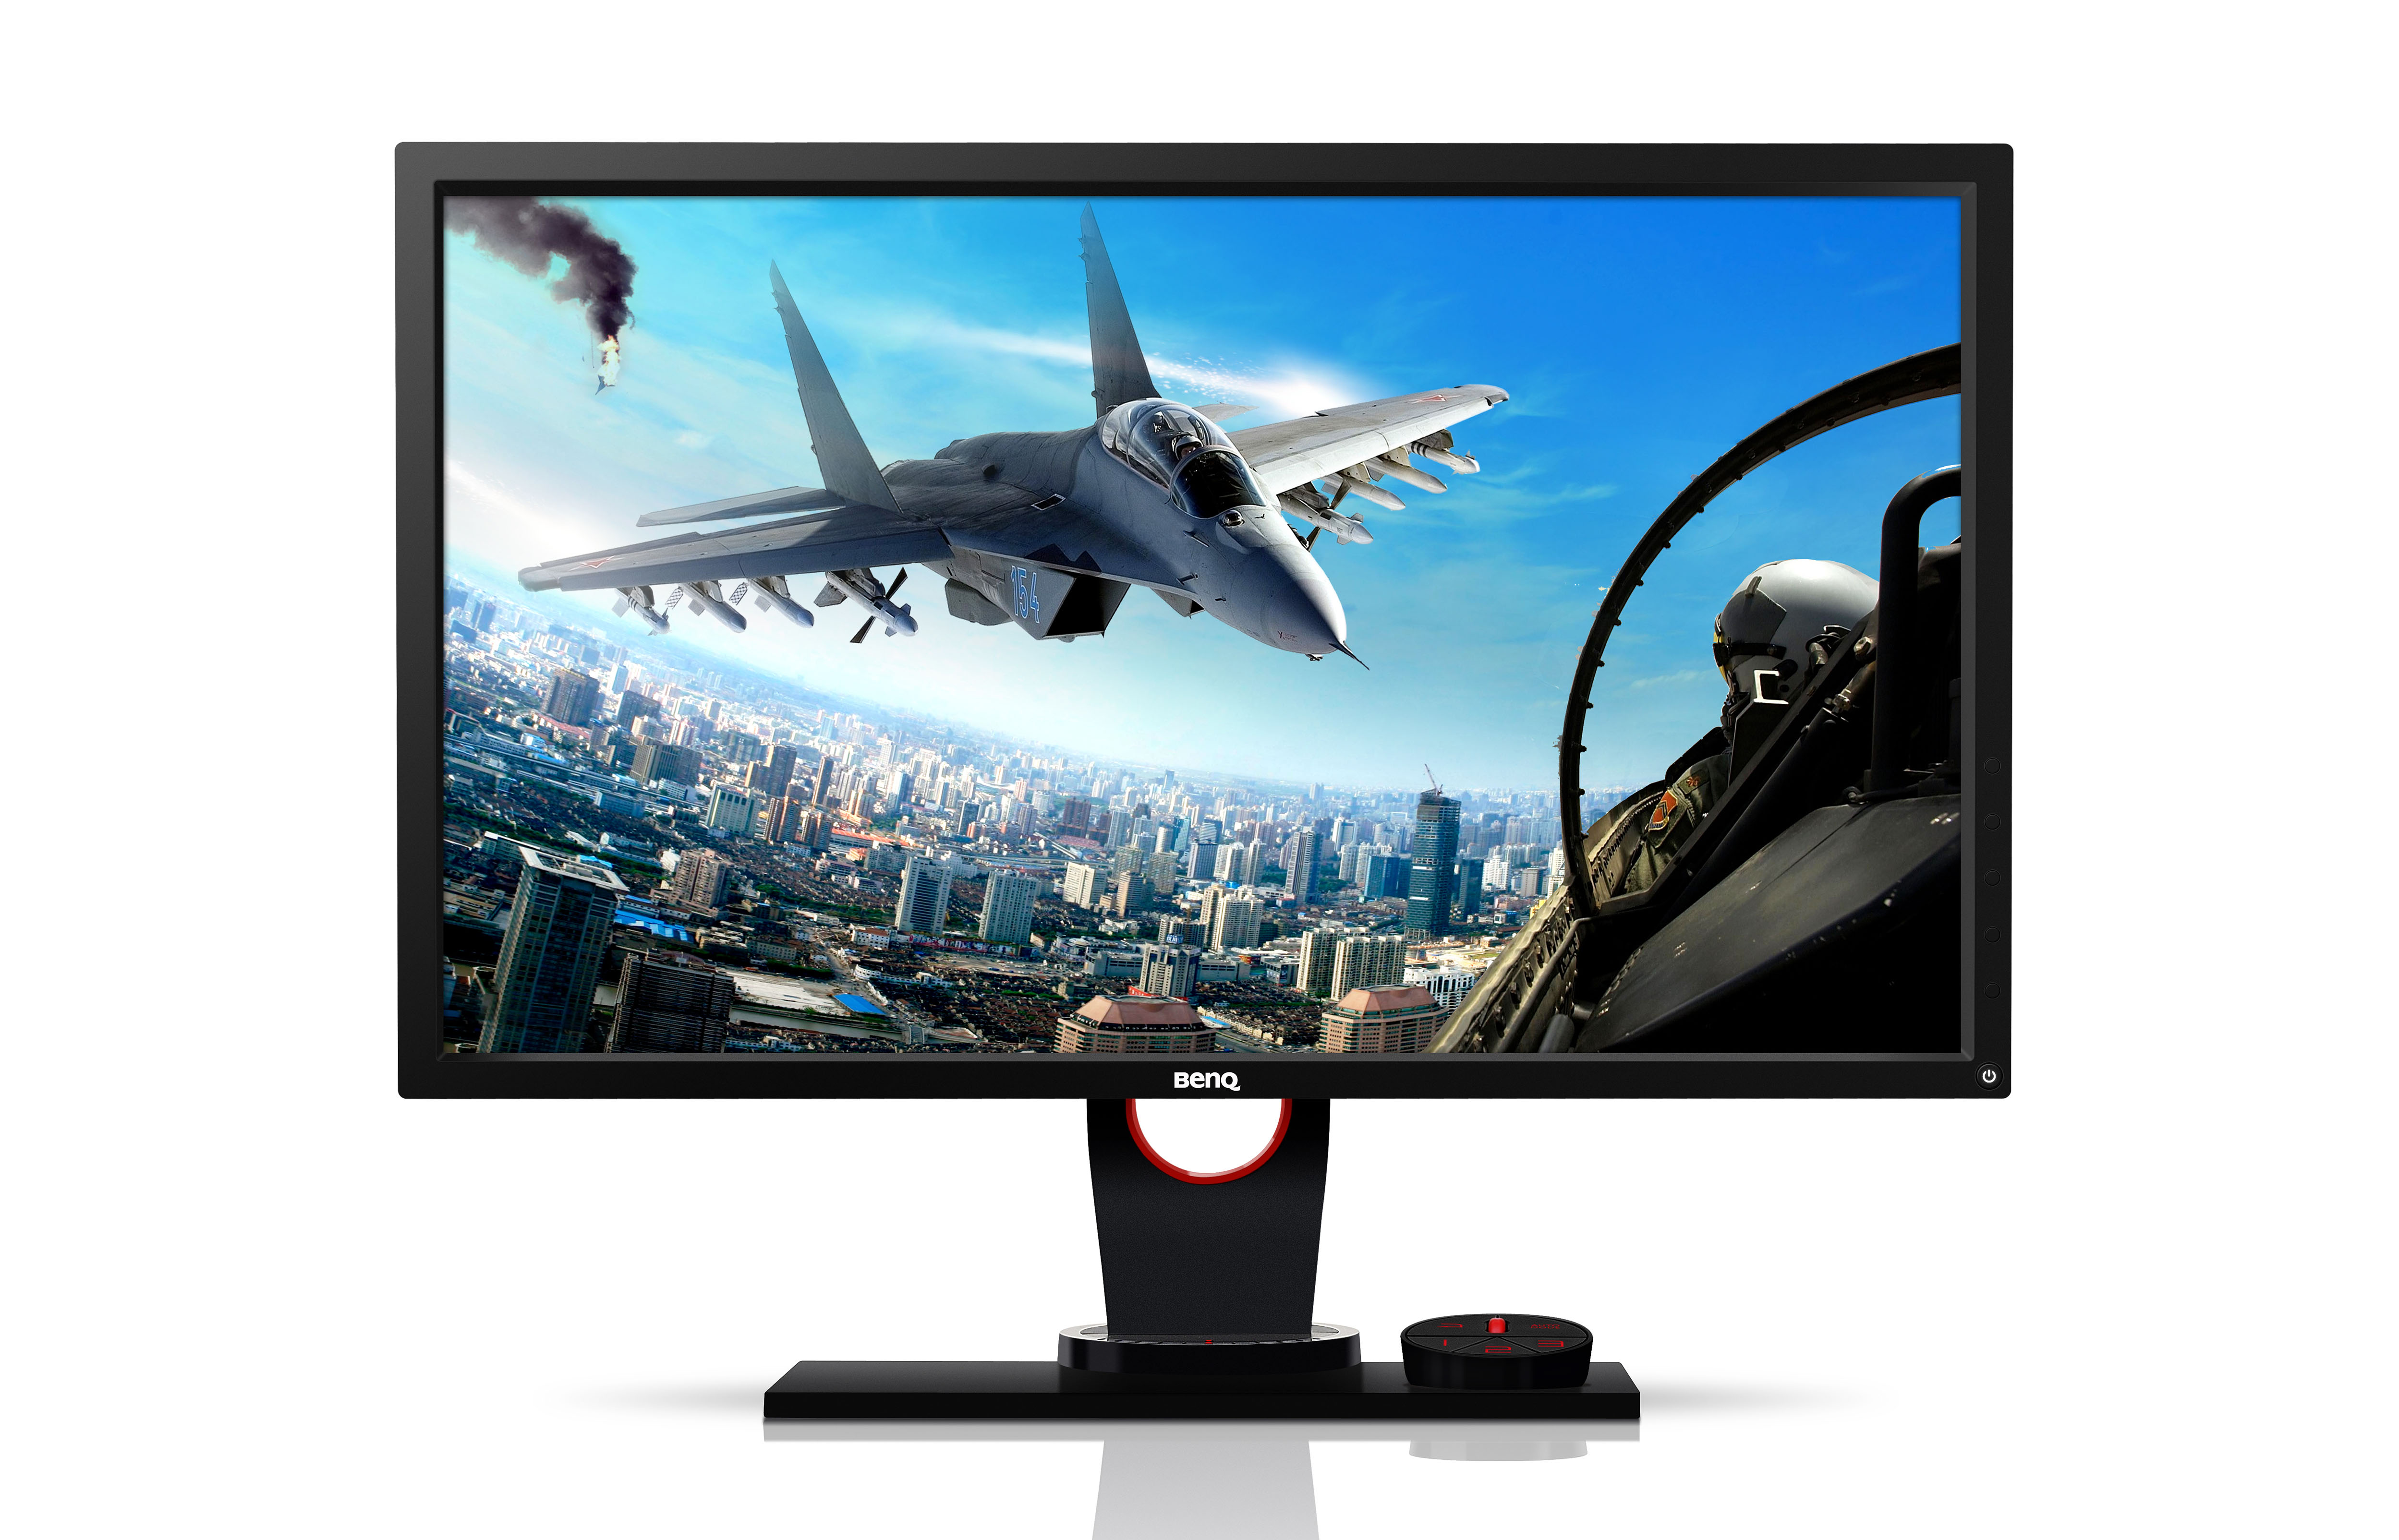 kaufberatung 144hz gaming monitore ab 27 zoll im berblick. Black Bedroom Furniture Sets. Home Design Ideas